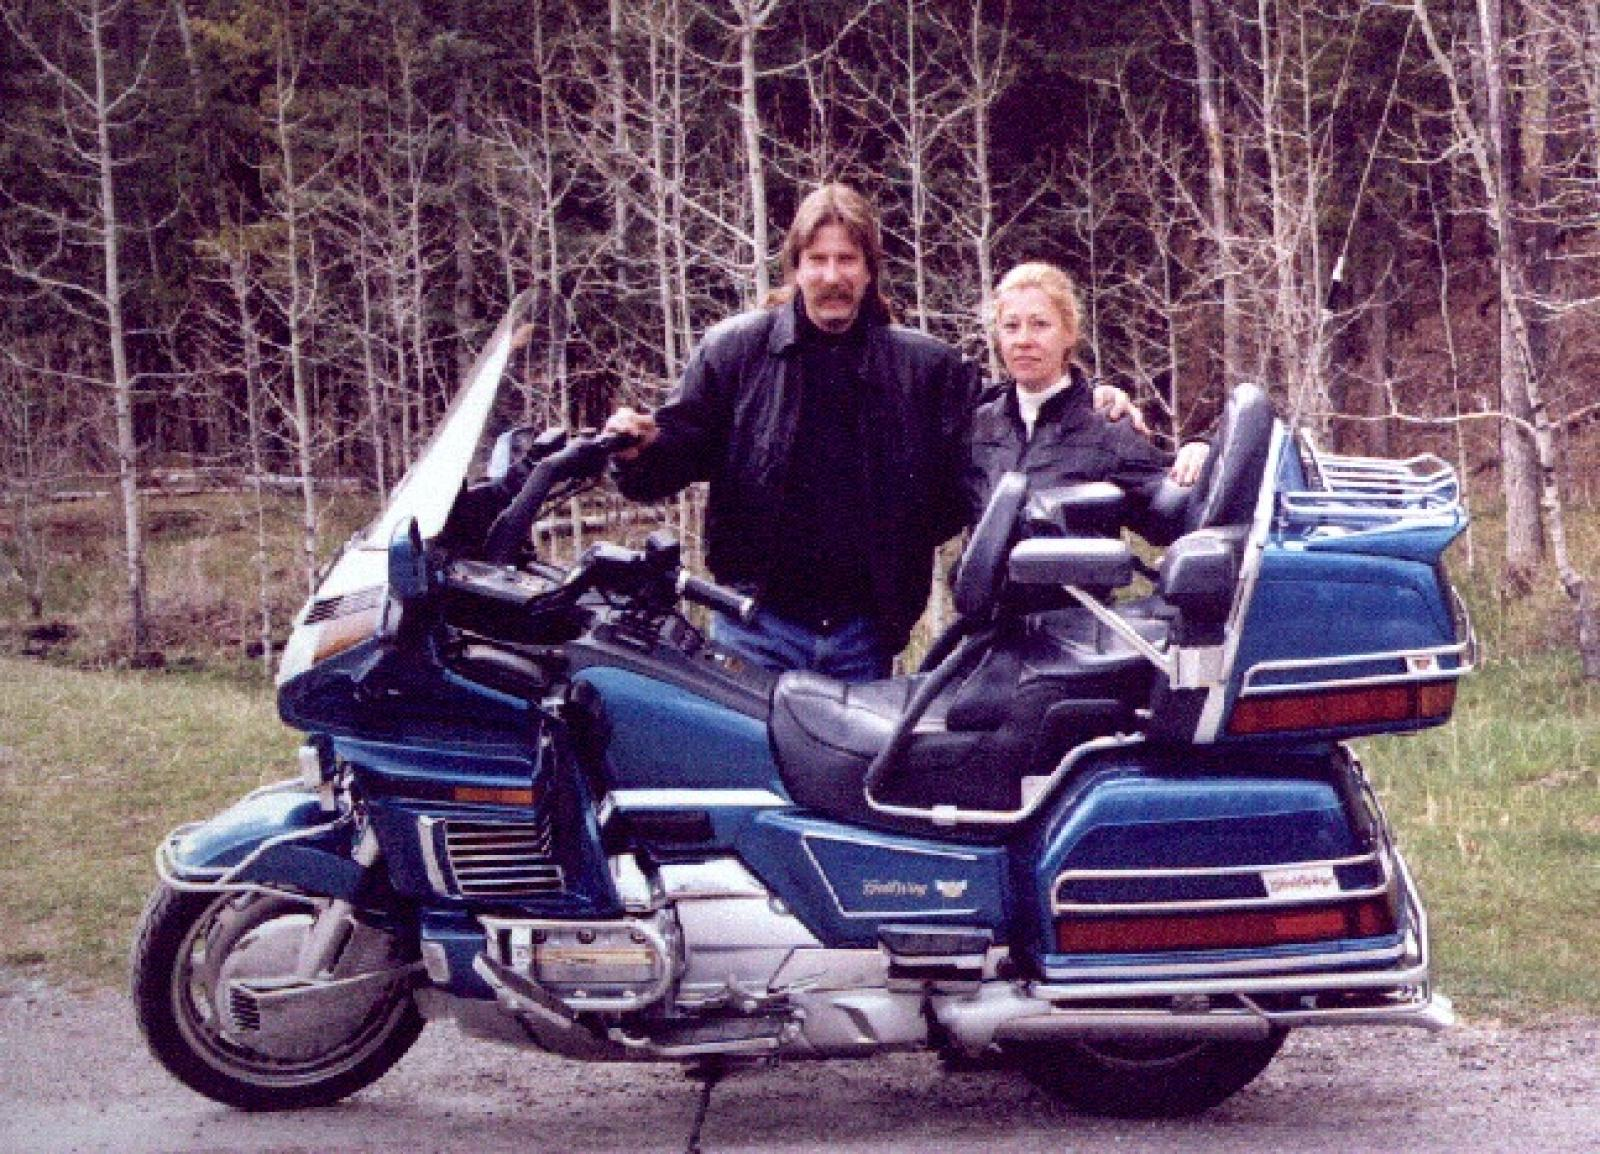 93 Gl1500 Wiring Diagram A Explained Diagrams 1993 Honda Goldwing 1992 Trusted Stereo For Colt